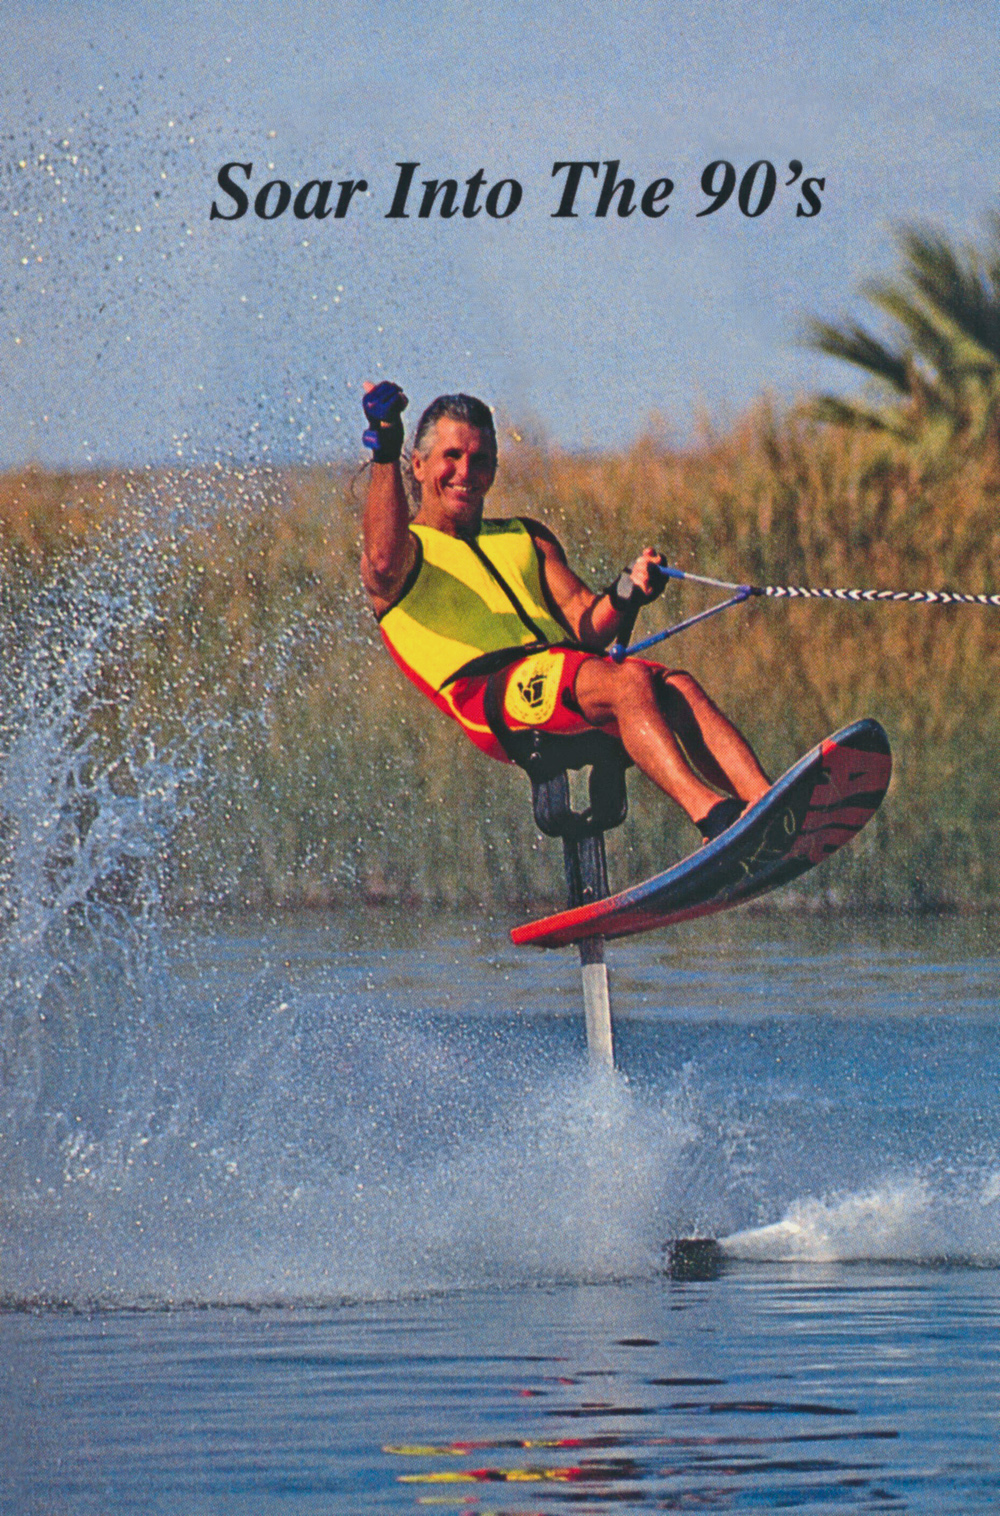 adventures-water-skiing-hydrofoiling-1994-air-chair-soar-90s-barts-mike-murphy-hydrofoil